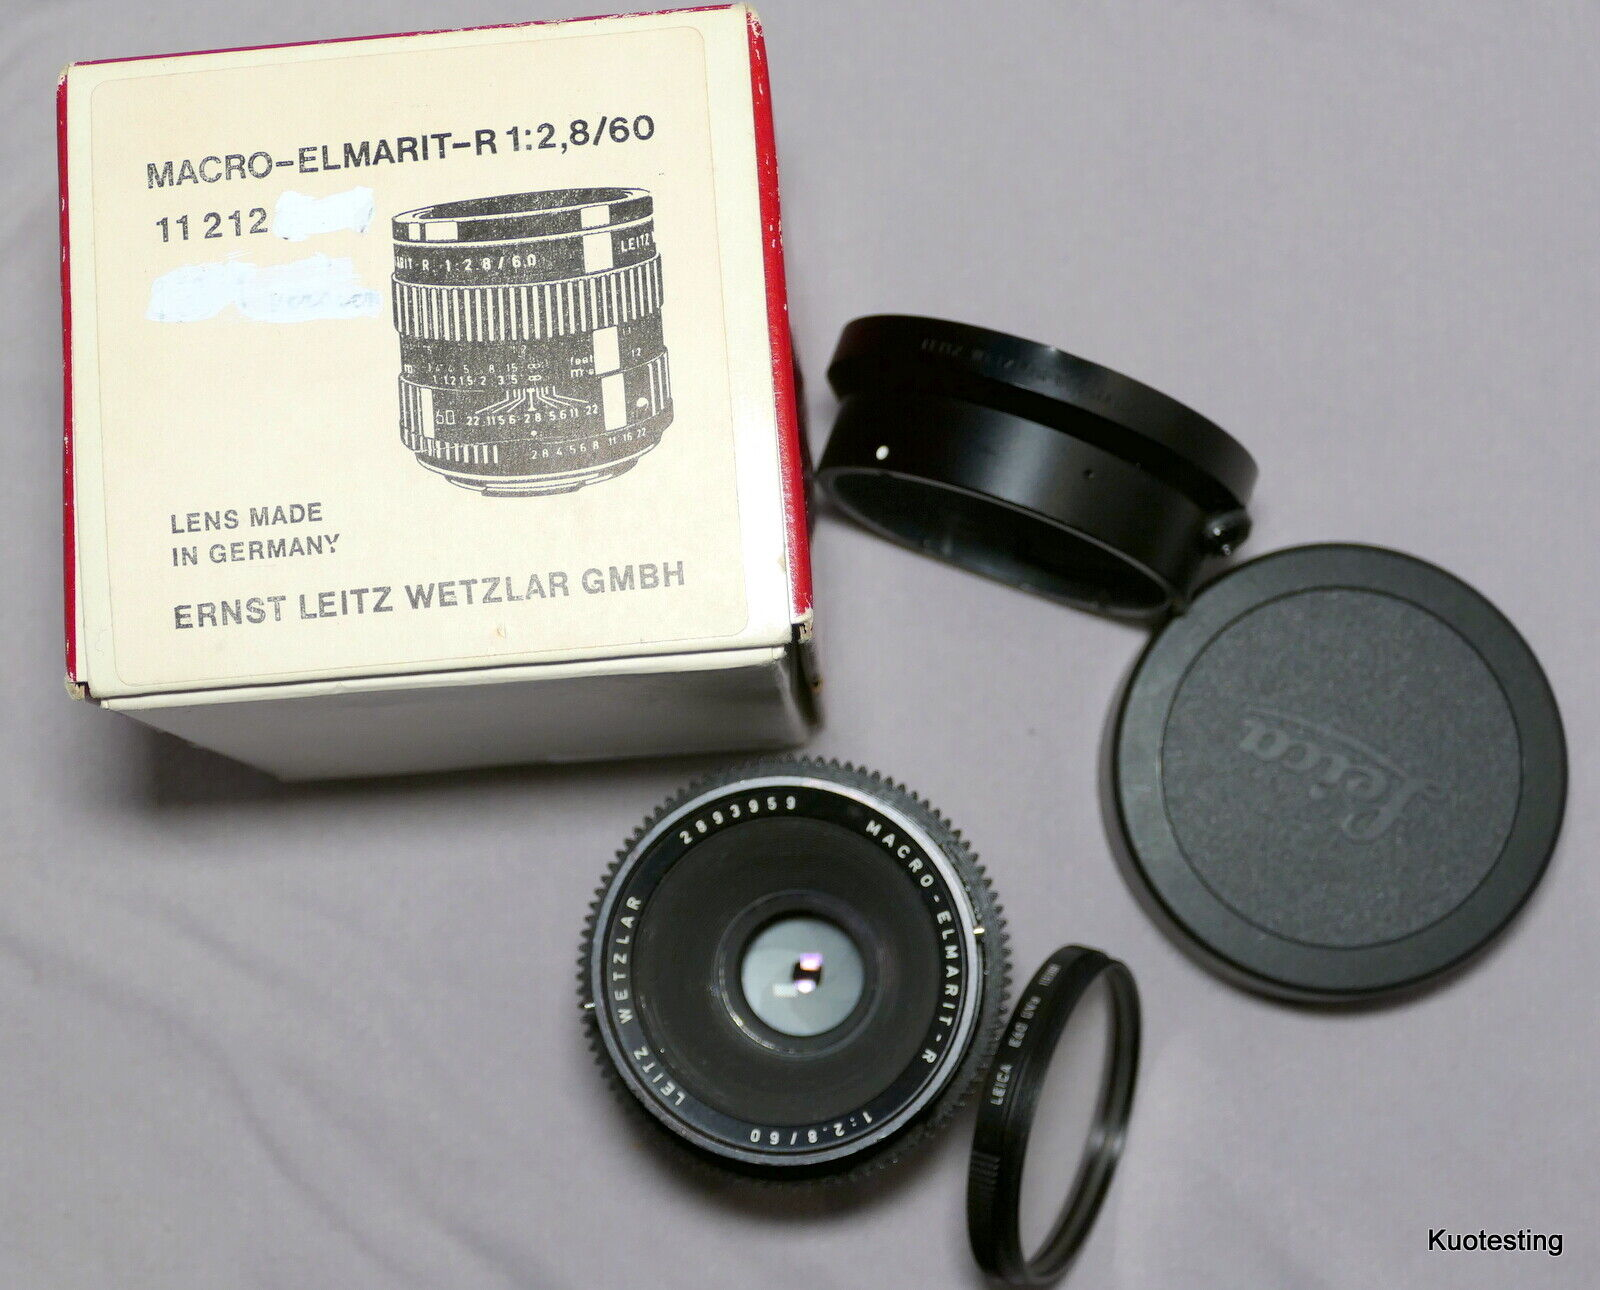 Leica 60mm F2.8 MACRO-ELMARIT-R 3-CAM Lens In Leica Box Without Matching S.N. - $340.00